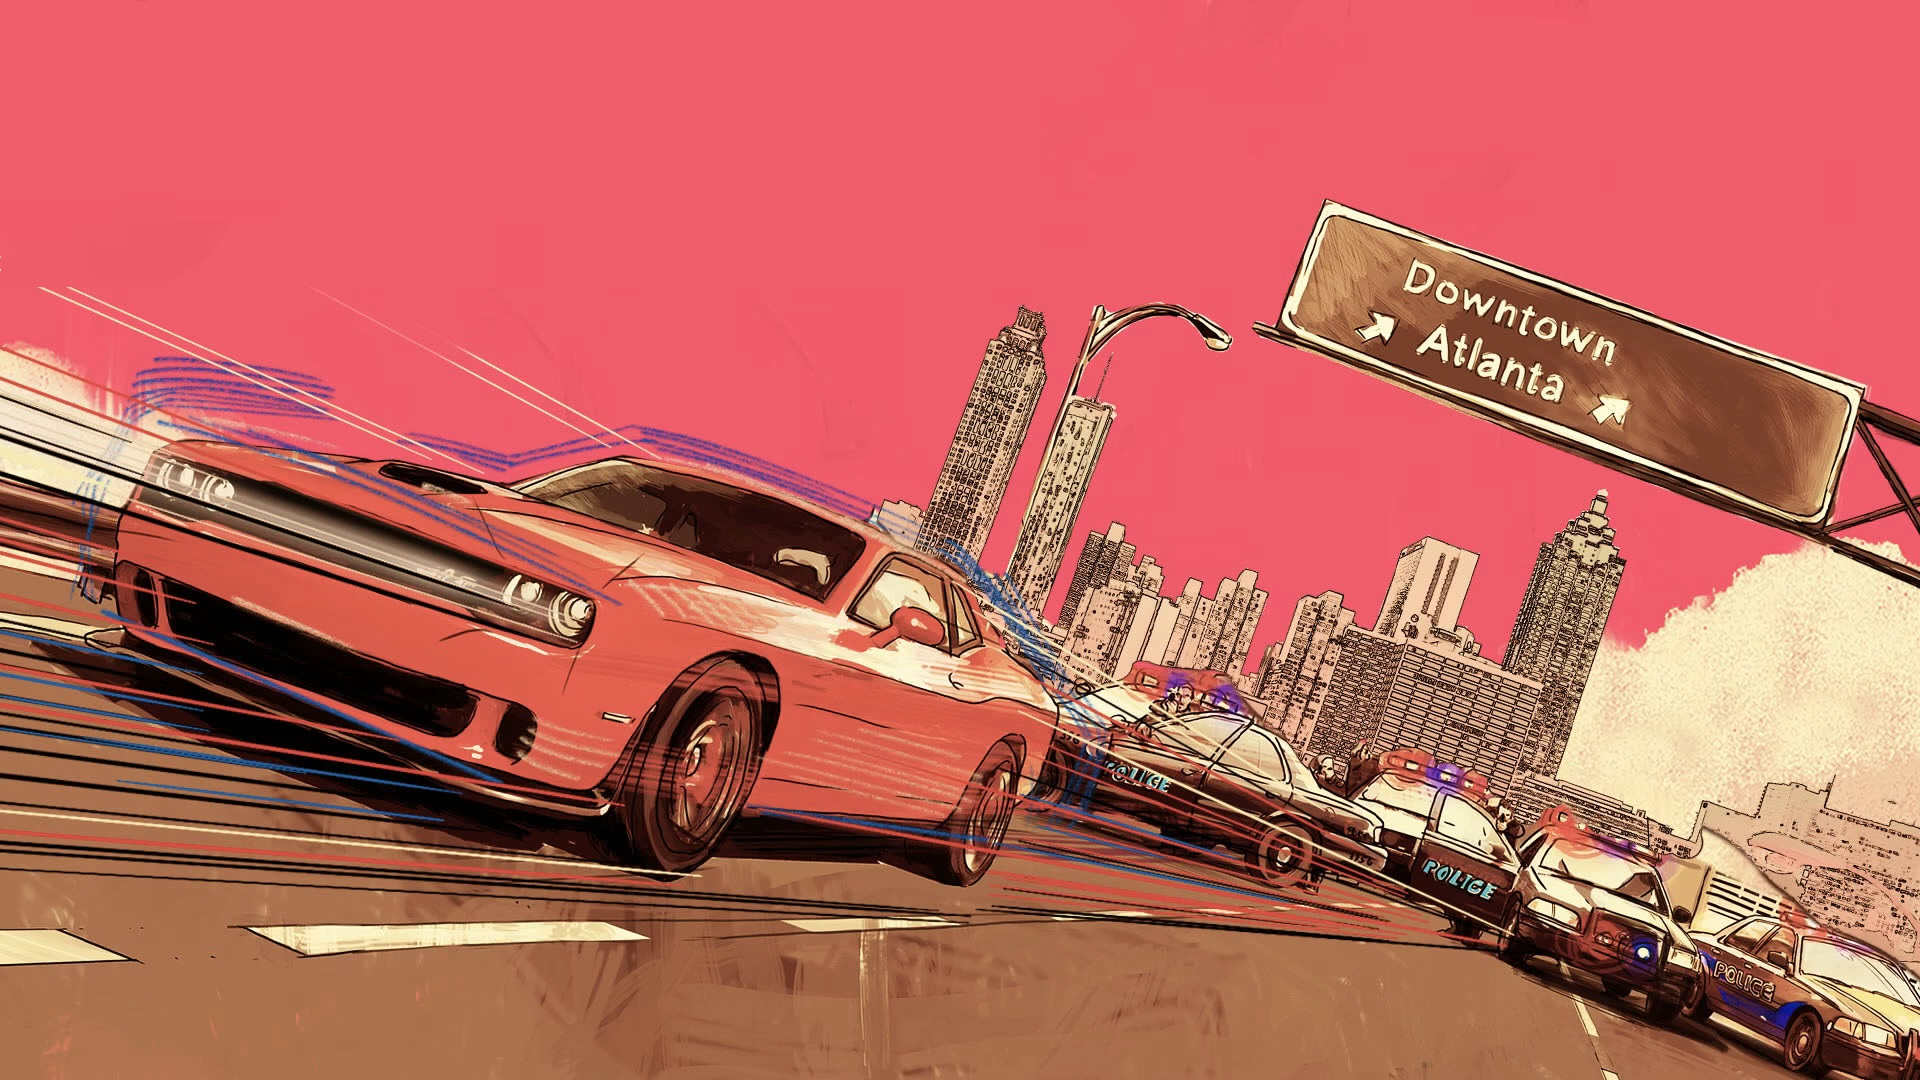 If you liked Baby Driver heres a dope wallpaper for you 1920x1080